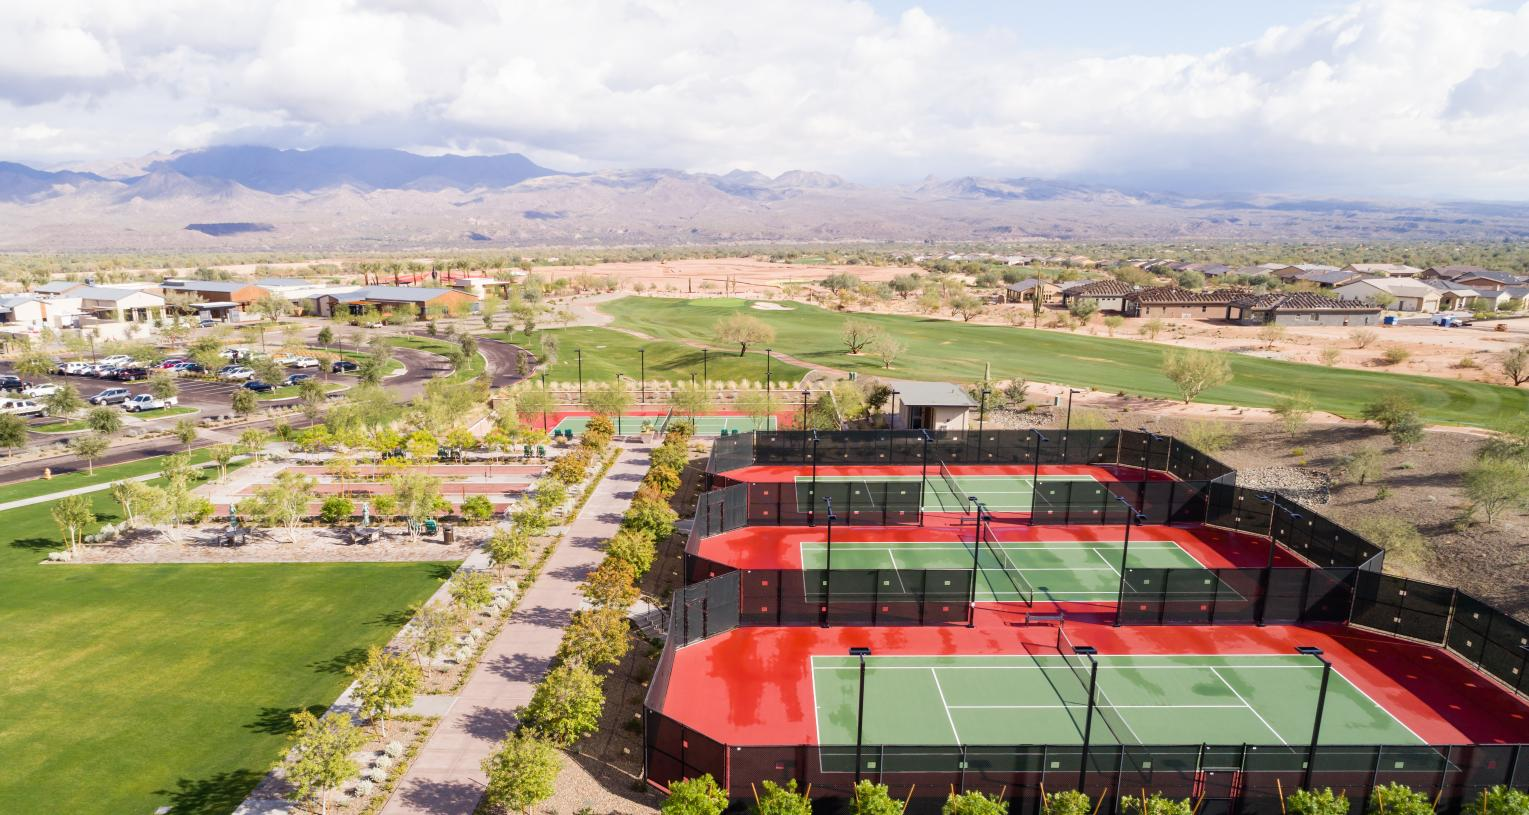 Sports Pavilion featuring tennis, bocce, and pickle ball courts